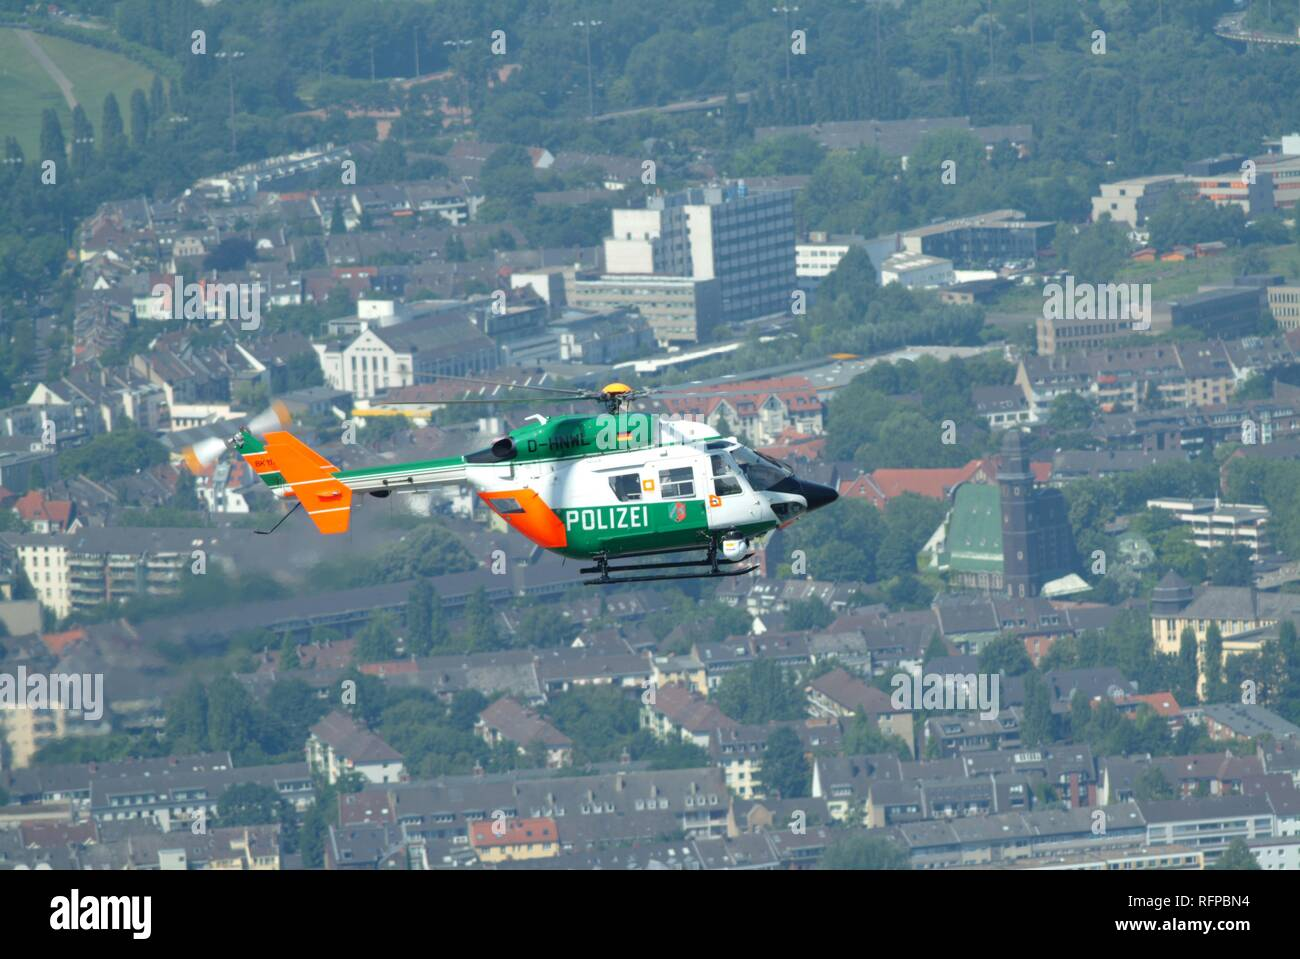 DEU, Germany, Duesseldorf: Alarm helicopter BK 117 with camera, infrared and heat-search camera. Can fly at night with night - Stock Image